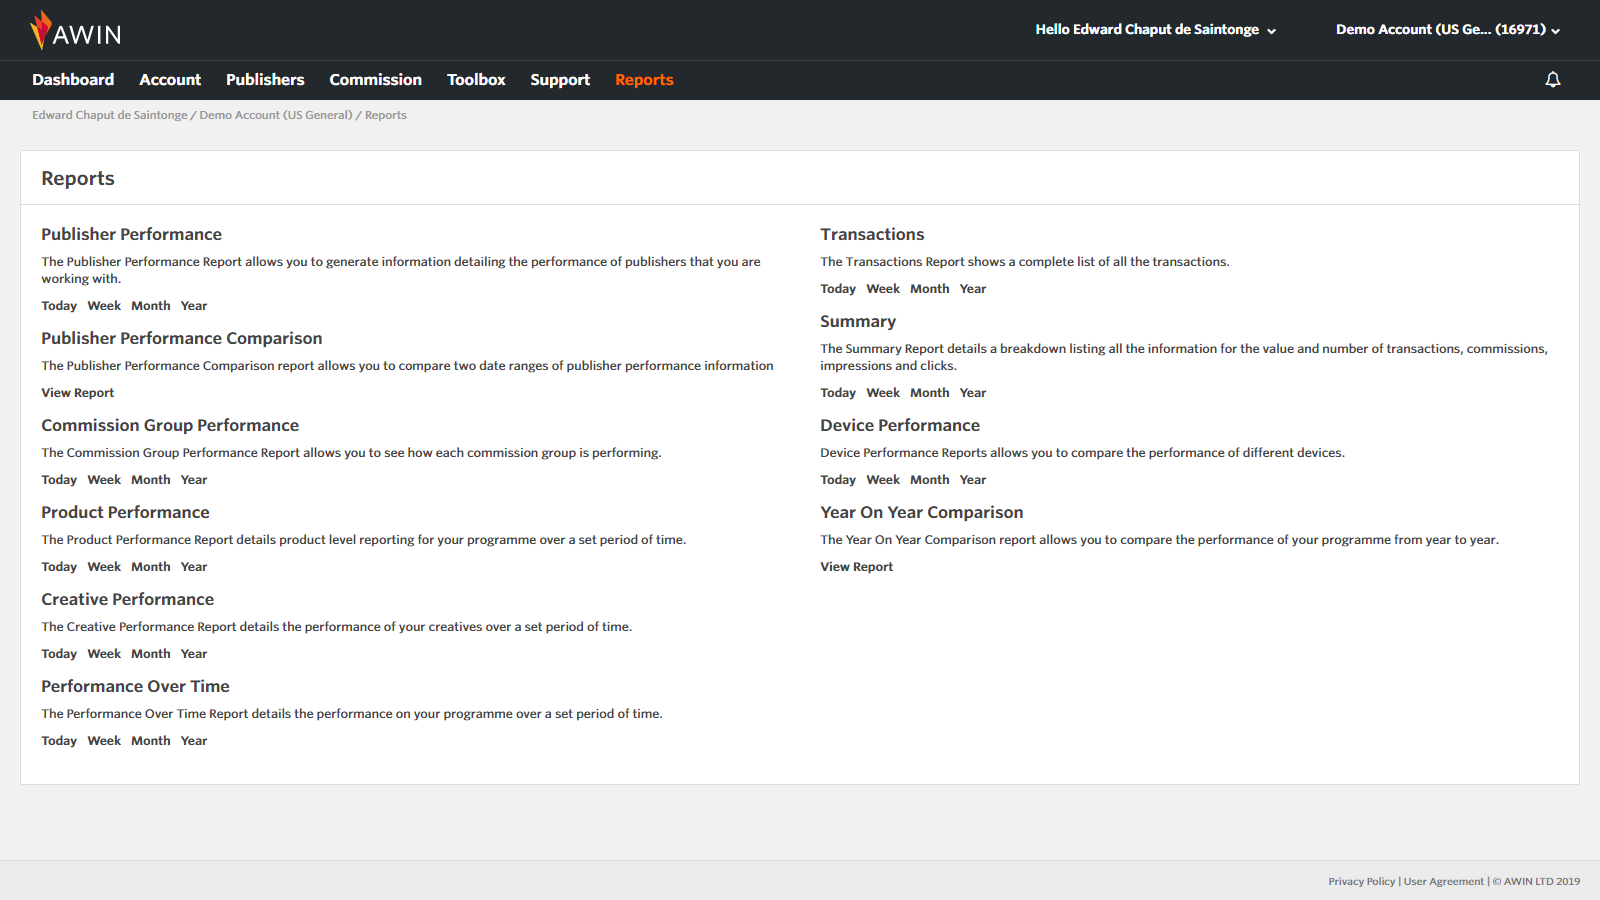 The full reporting suite on the Awin platform.